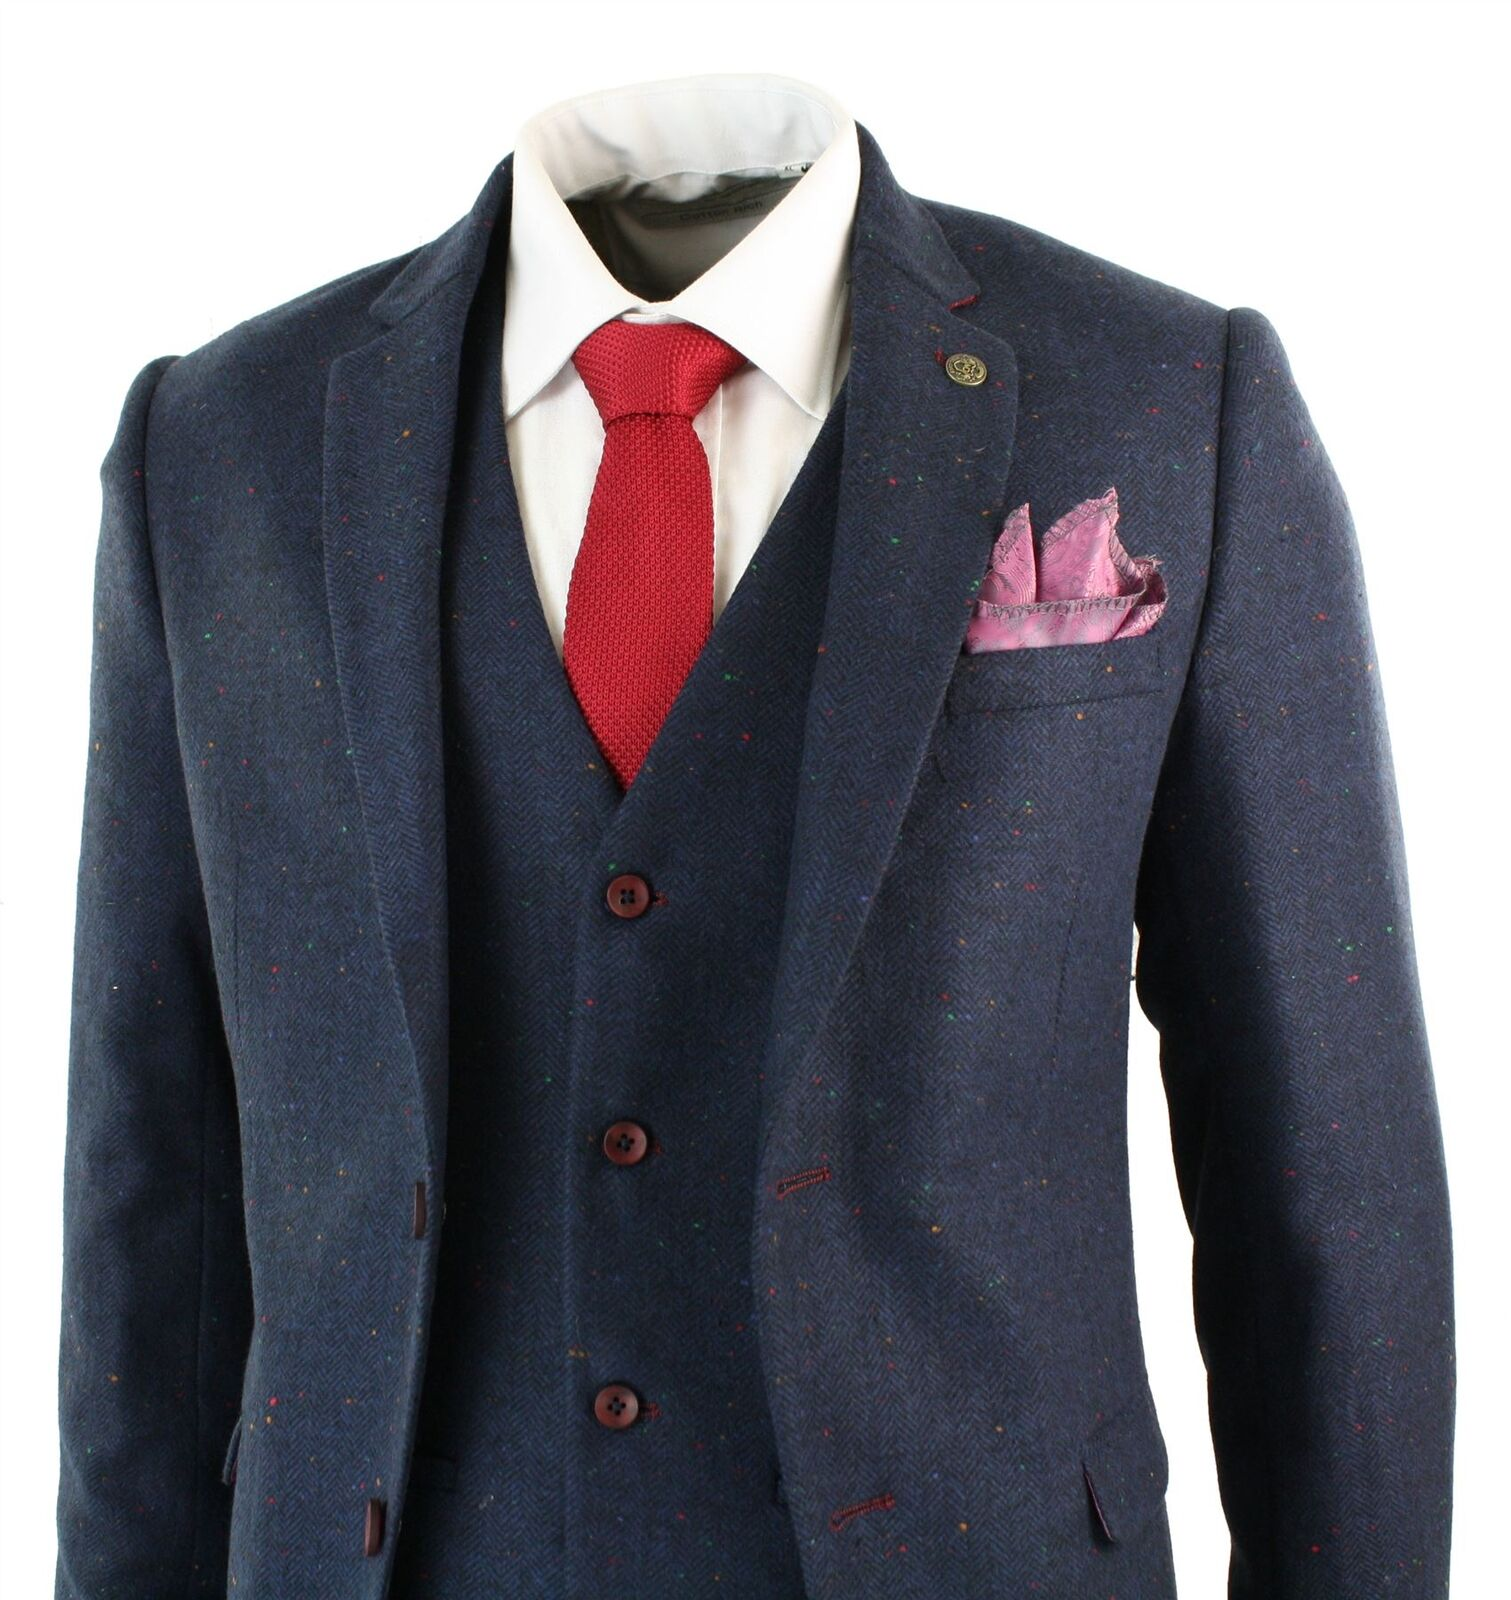 Costume homme 3 pièces Marc Darcy style tweed rétro blue marine